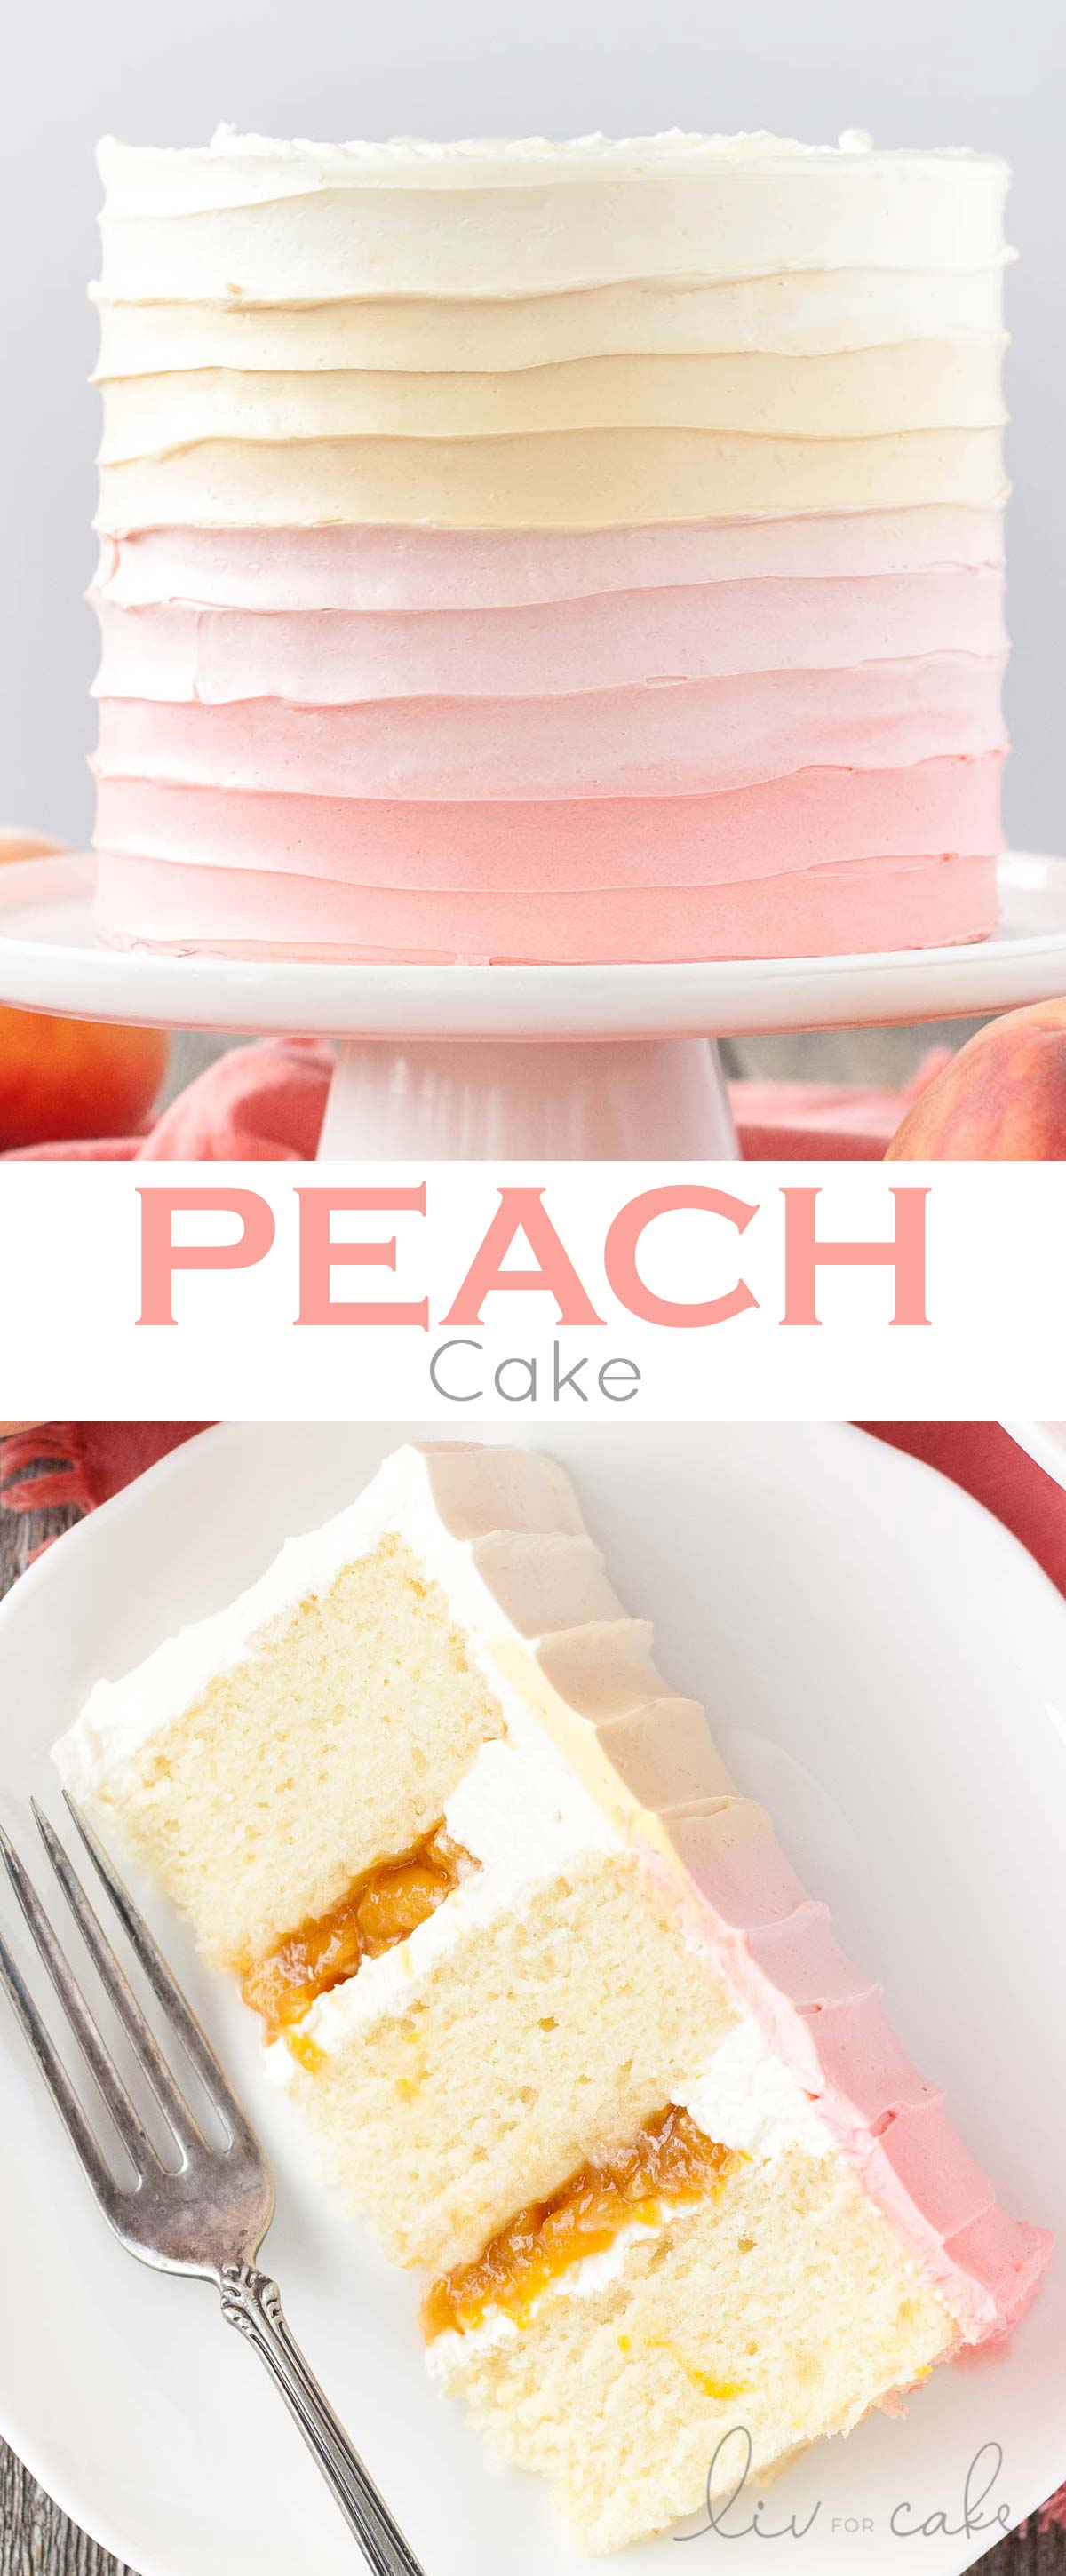 Peach cake image collage.